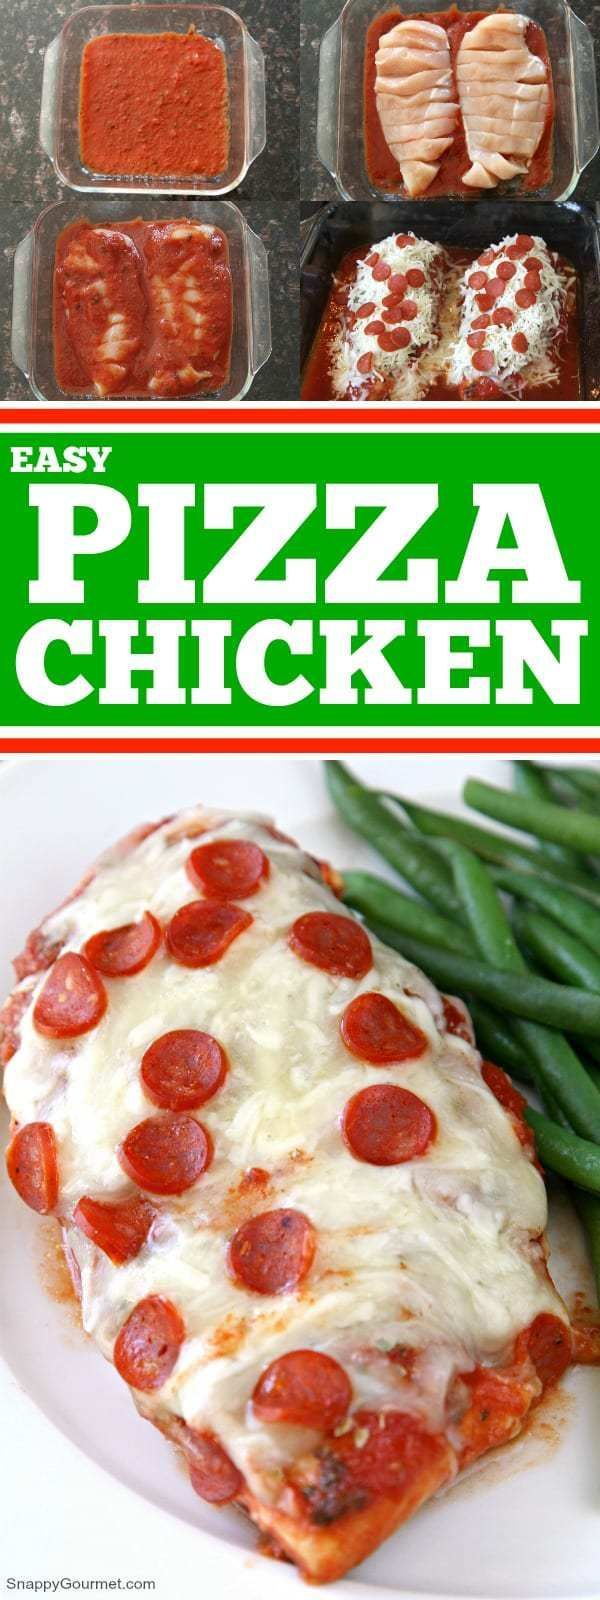 Easy Pizza Chicken Recipe - low carb baked chicken recipe with tomato sauce, cheese, spices, and pepperoni. SnappyGourmet.com #LowCarb #GlutenFree #Pizza #SnappyGourmet